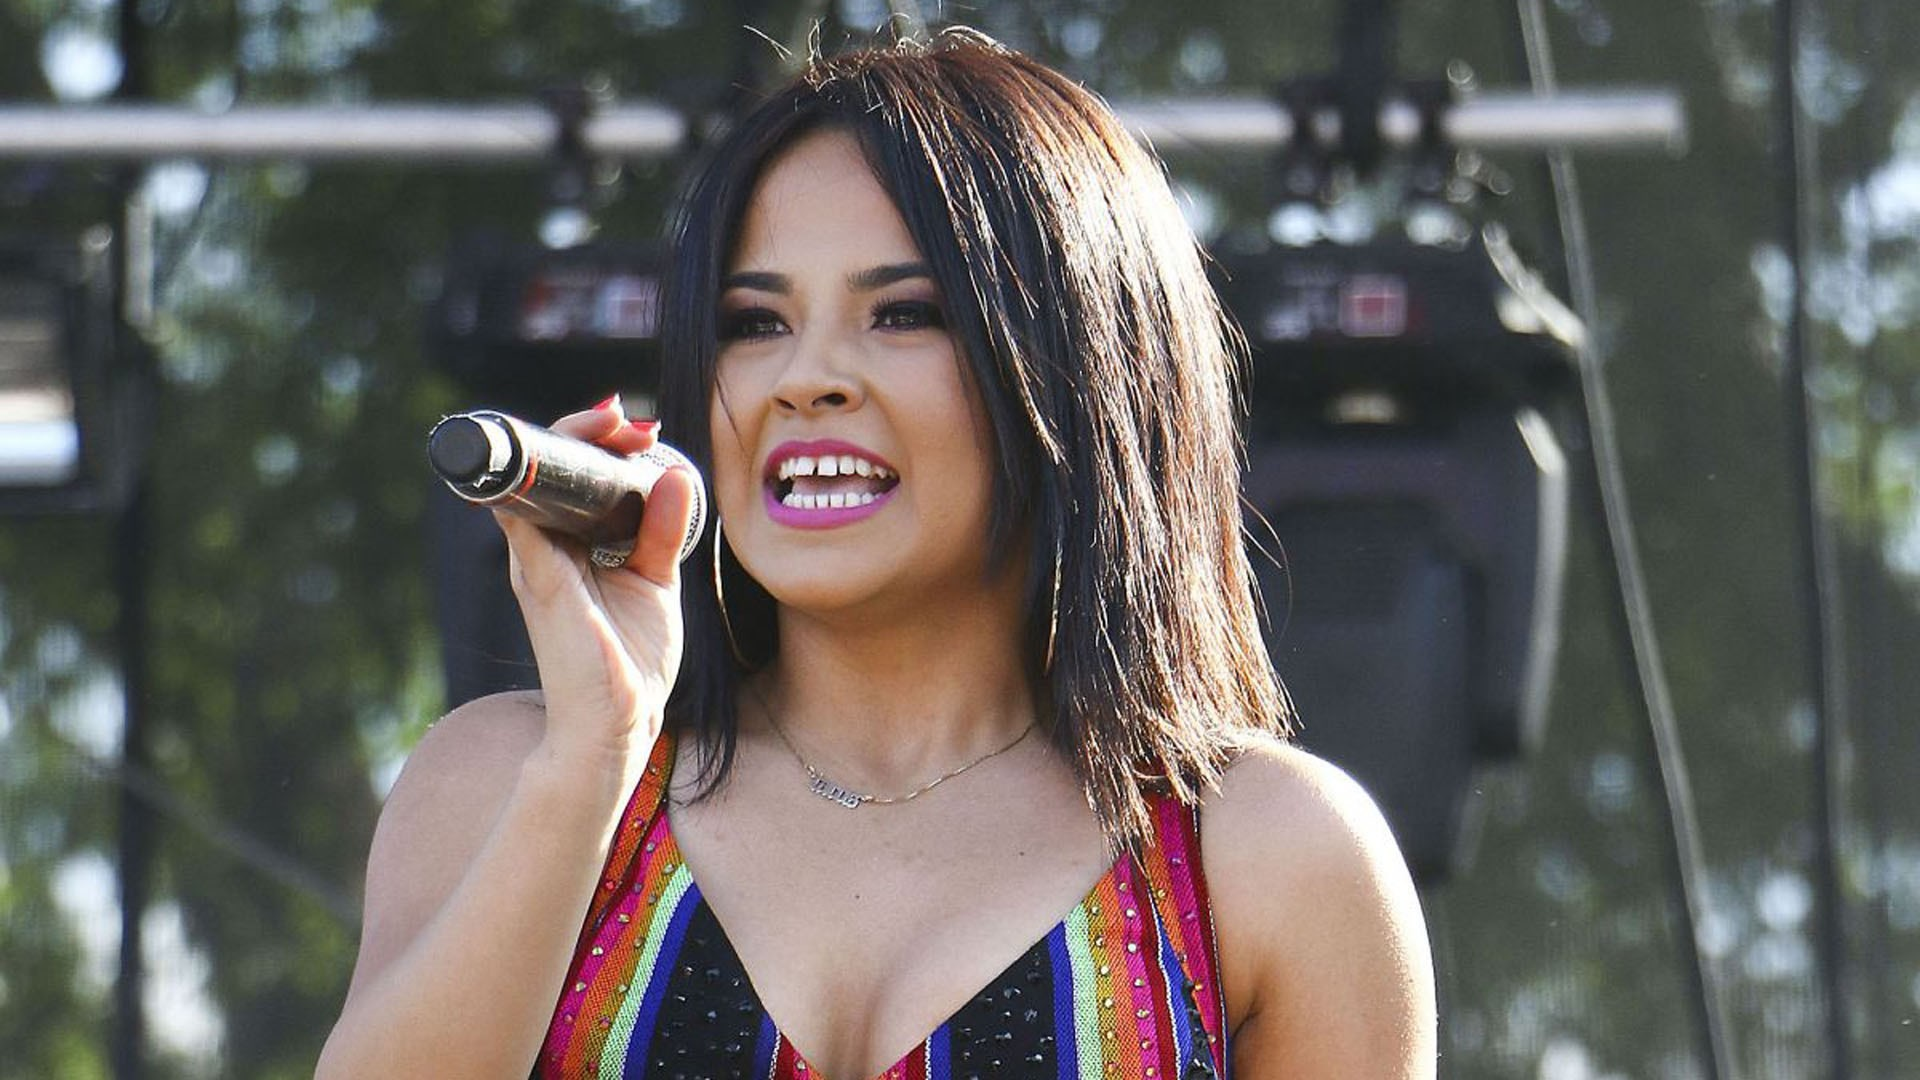 Res: 1920x1080, Free-Awesome-becky-g-pic-Duarte-Williams--